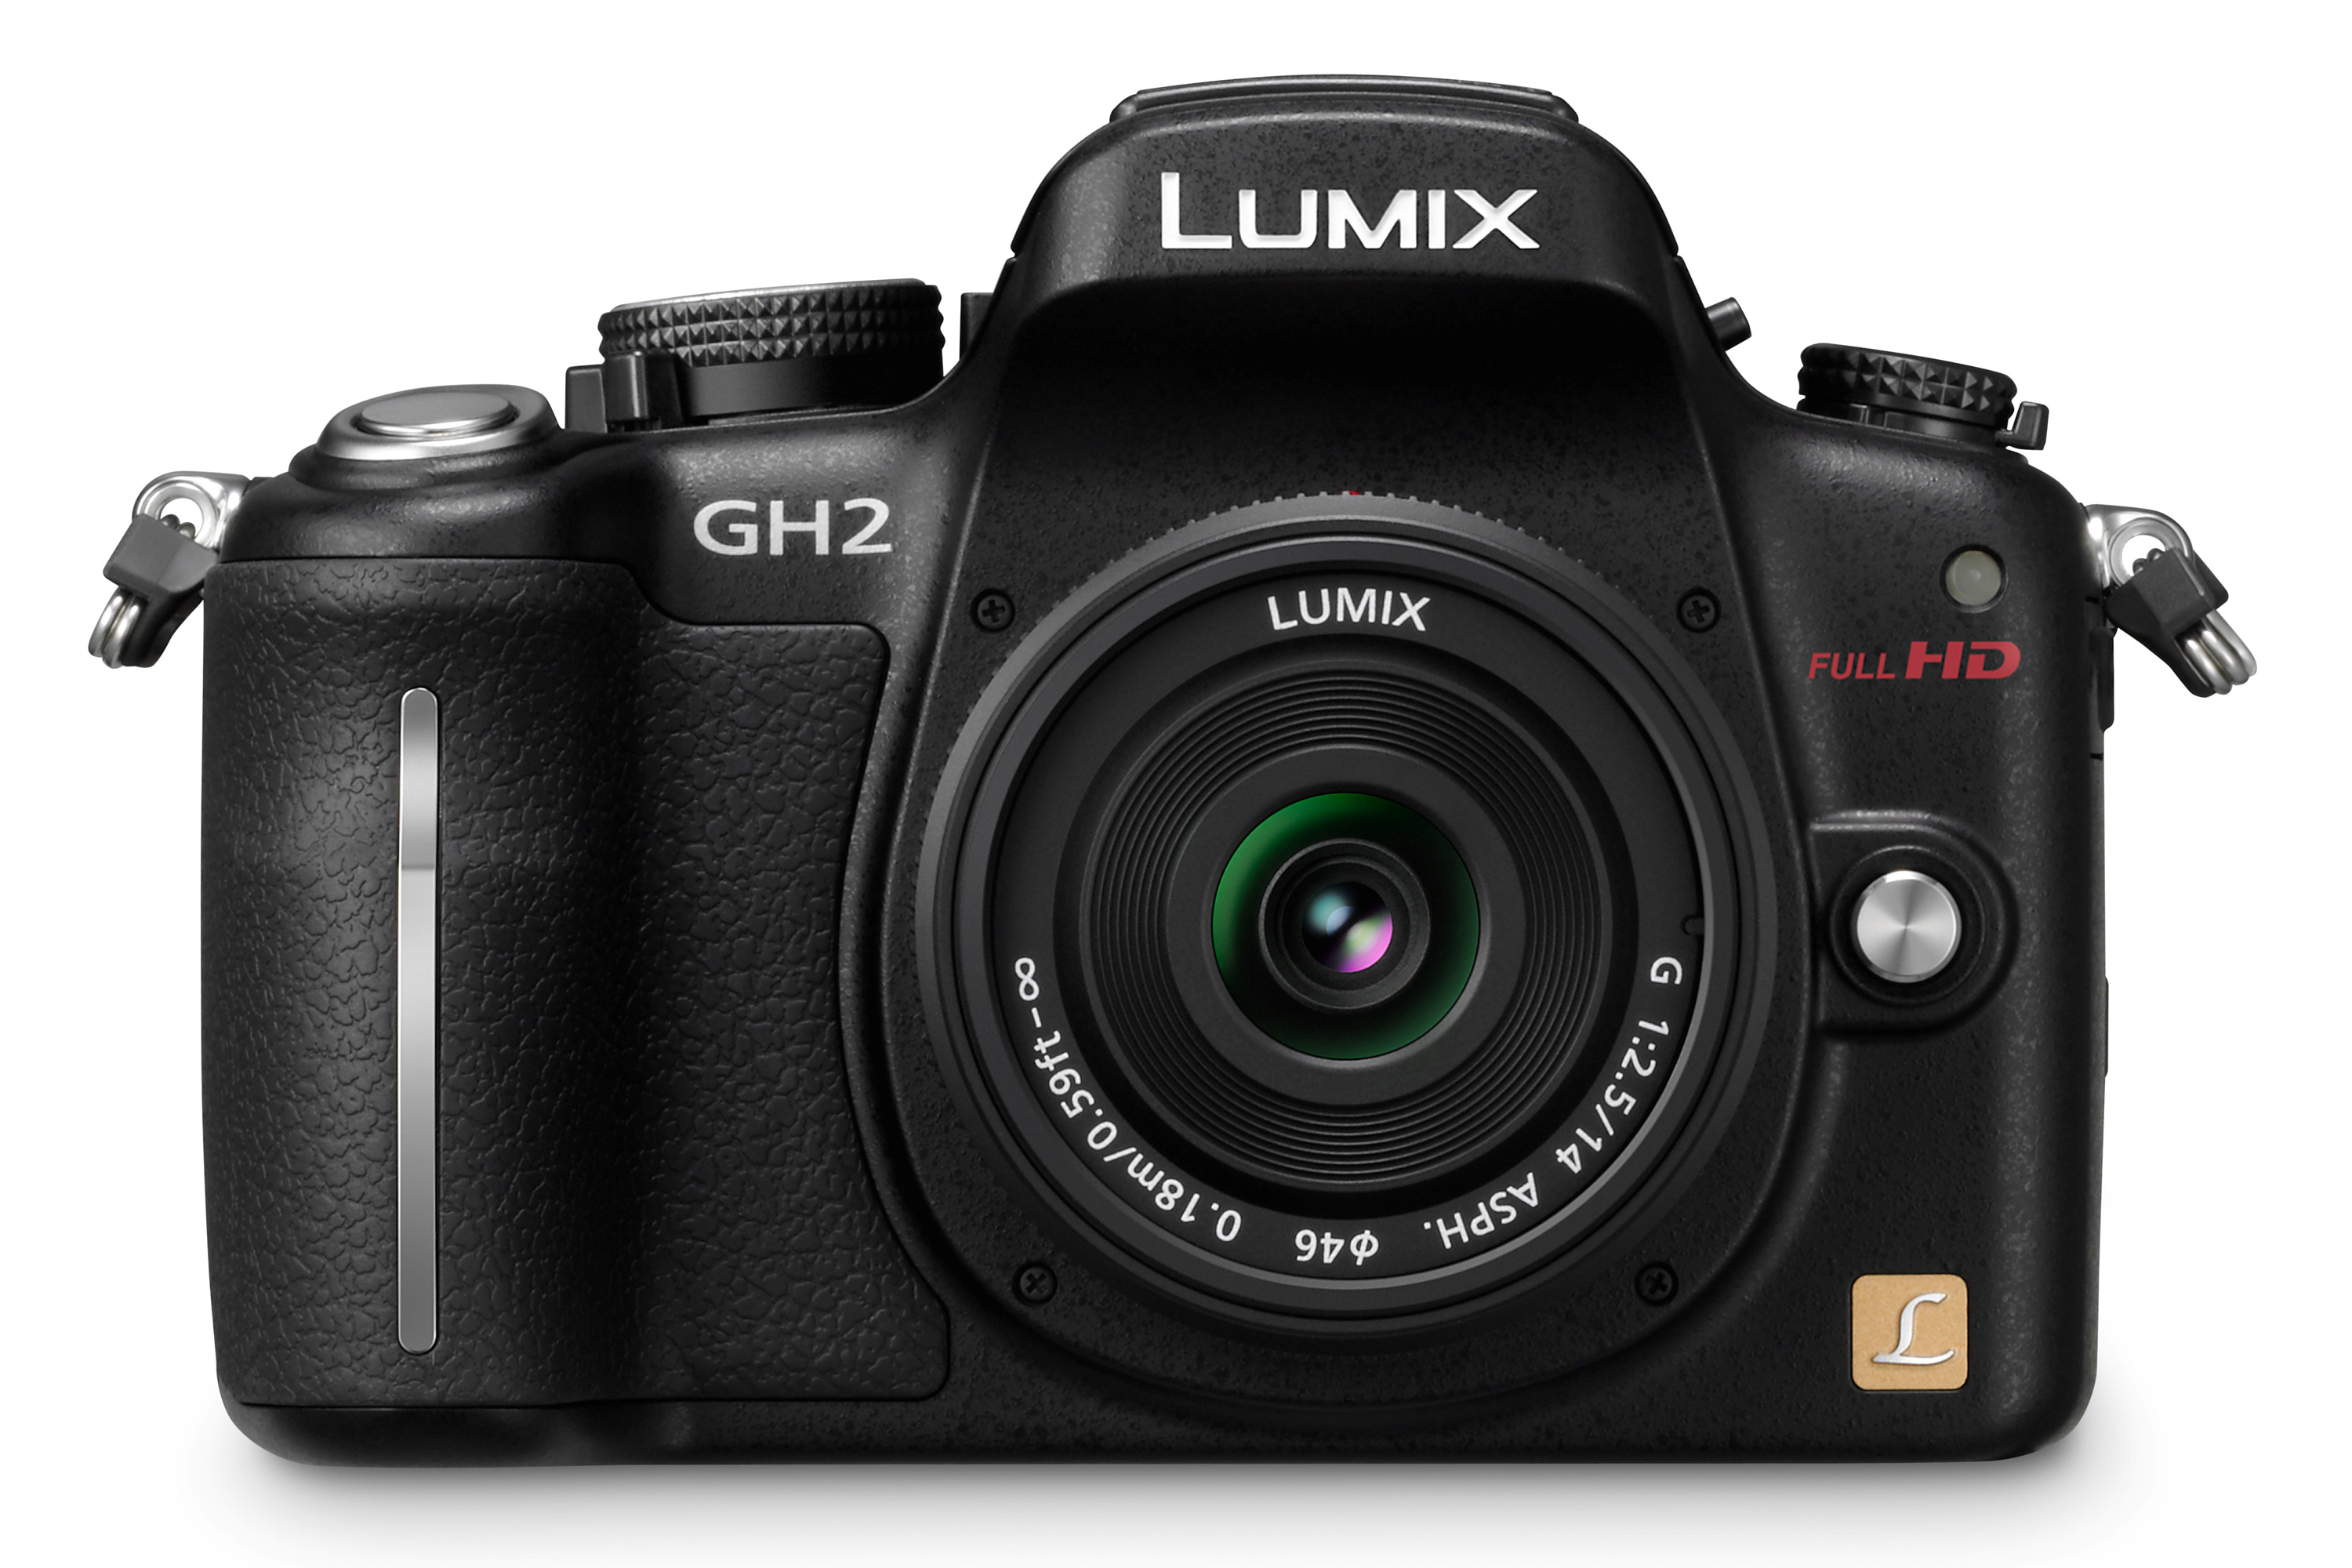 Panasonic LUMIX DMC-GH2 official: http://www.hitechreview.com/cameras/digital-cameras/panasonic-lumix-dmc-gh2-official/27682/